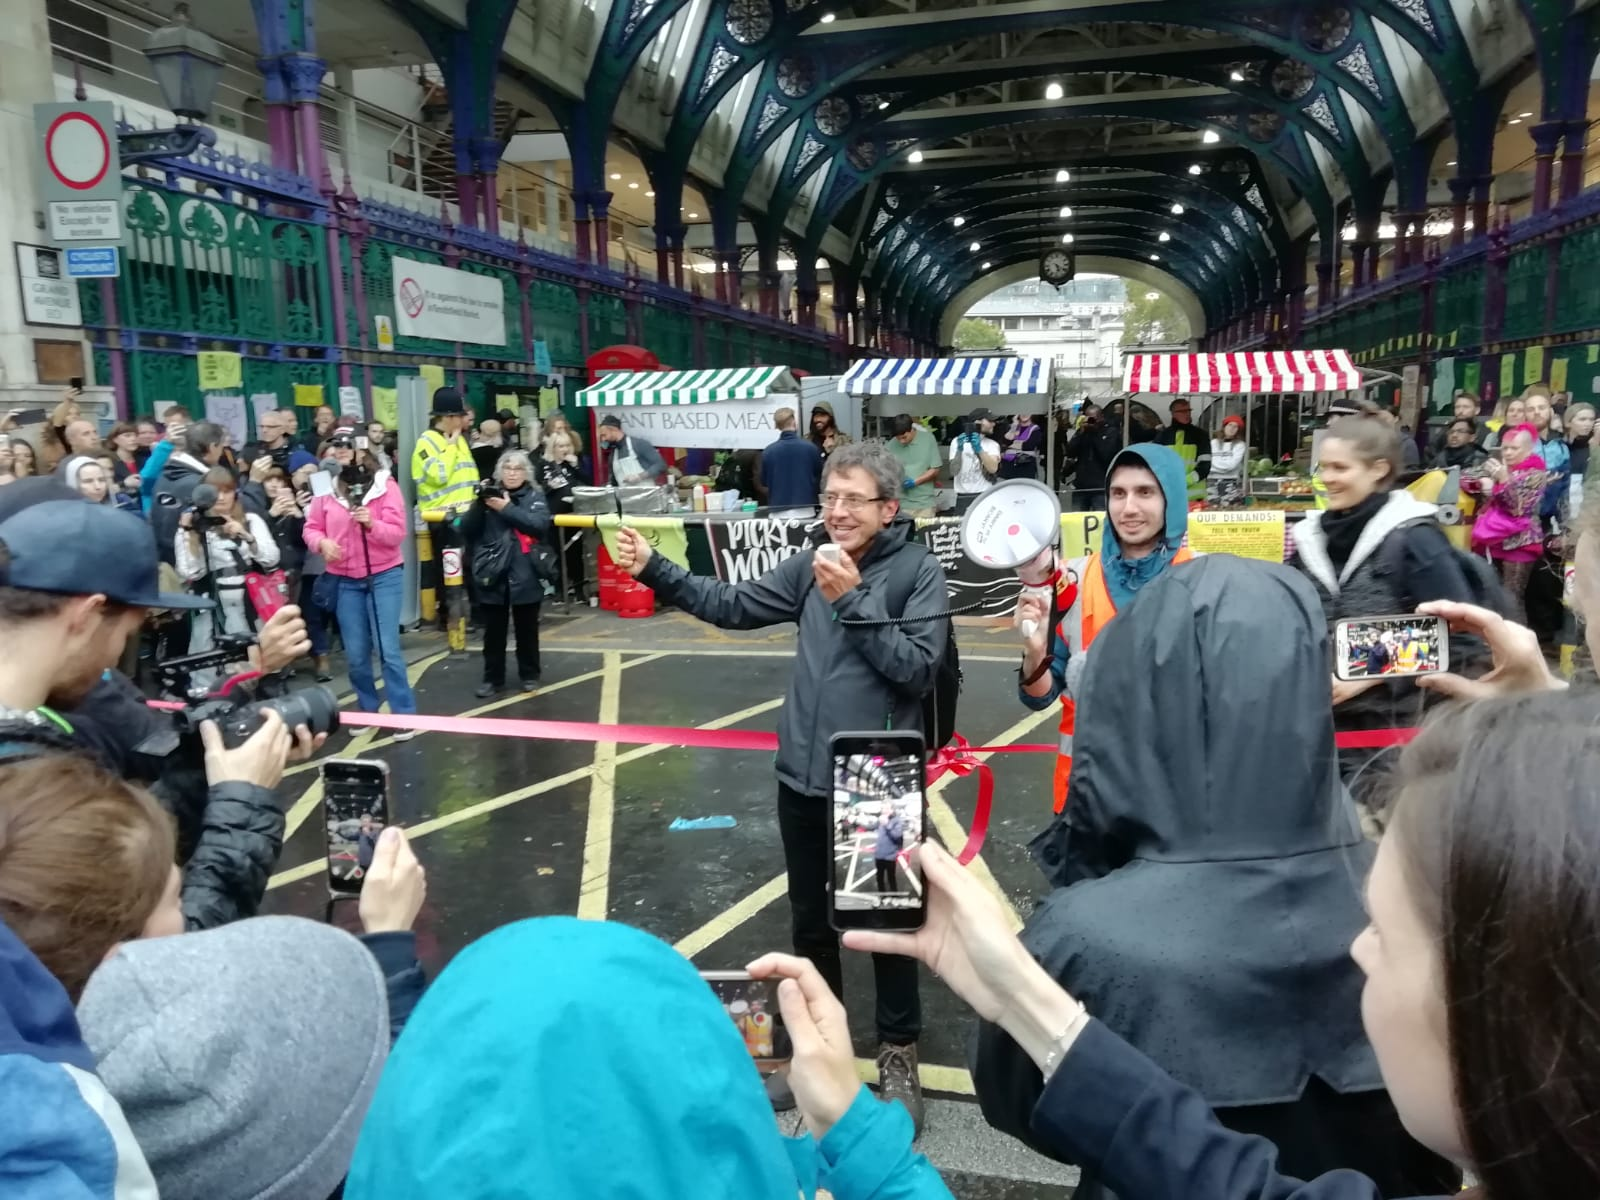 George Monbiot at the Animal Rebellion occupation of Smithfield Meat Market in London